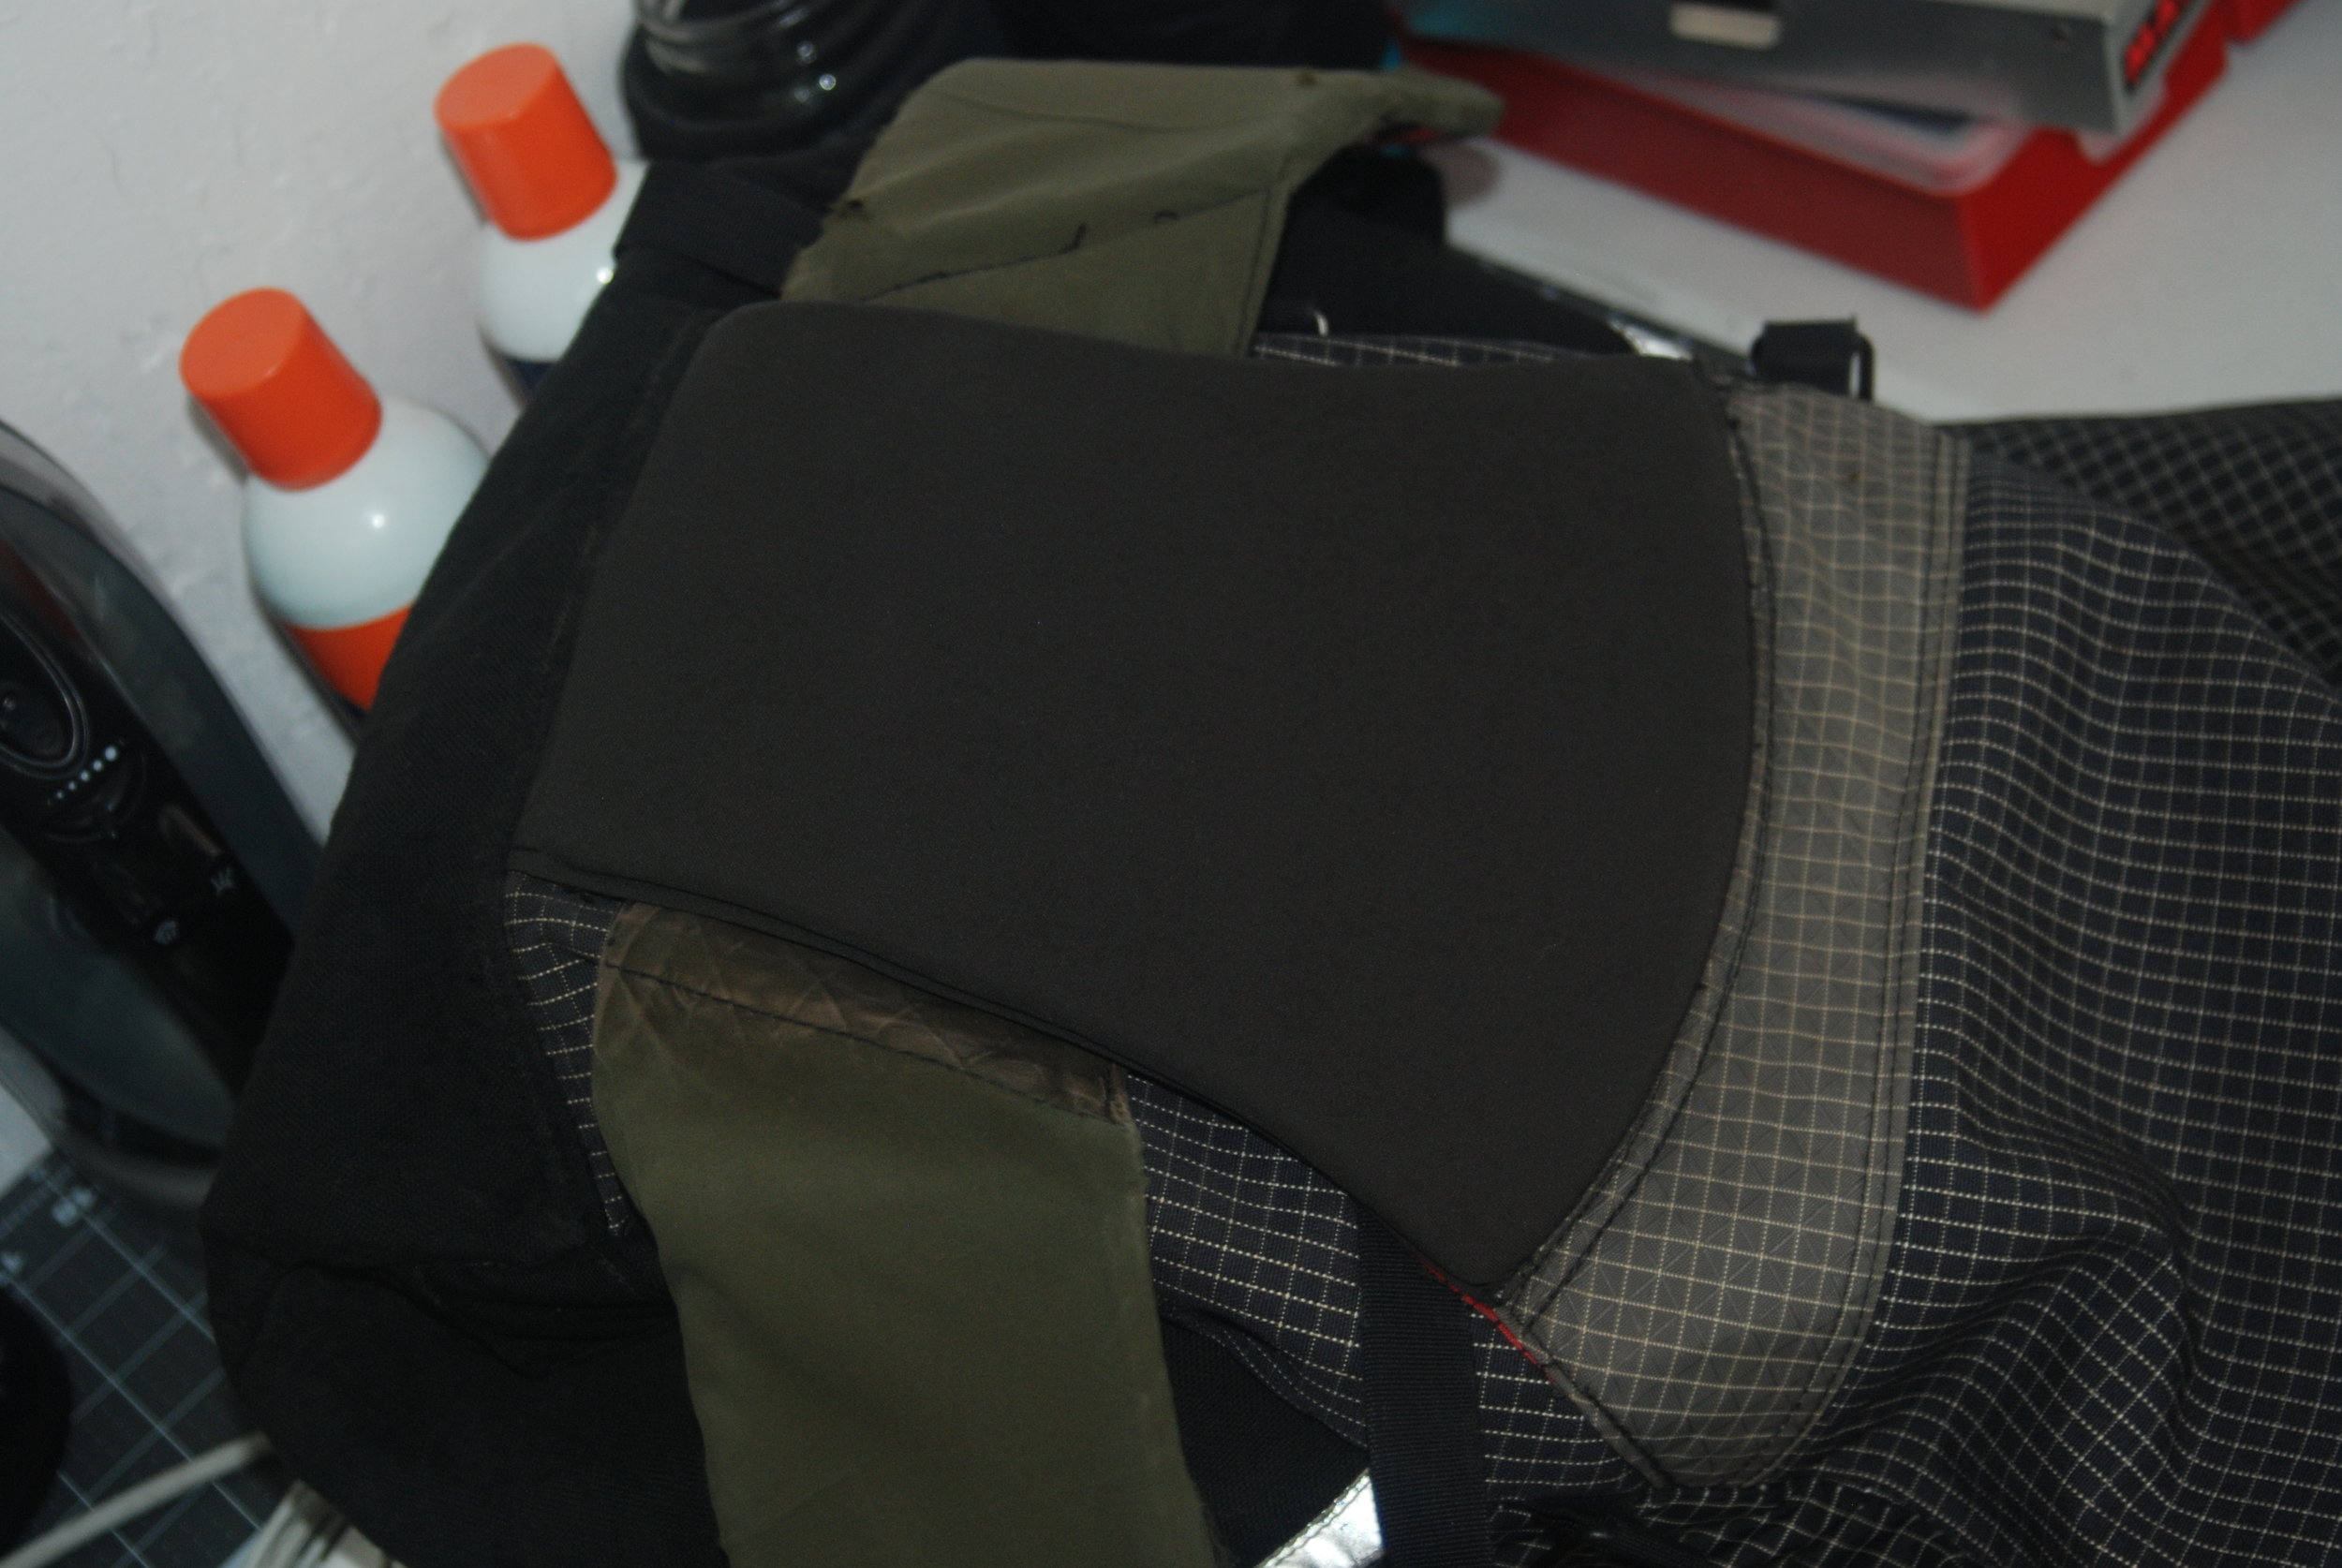 Rebuild of the lumbar pad on a lightweight alpine pack to get one more expedition out of it. The repair outlasted the rest of the pack in this case.